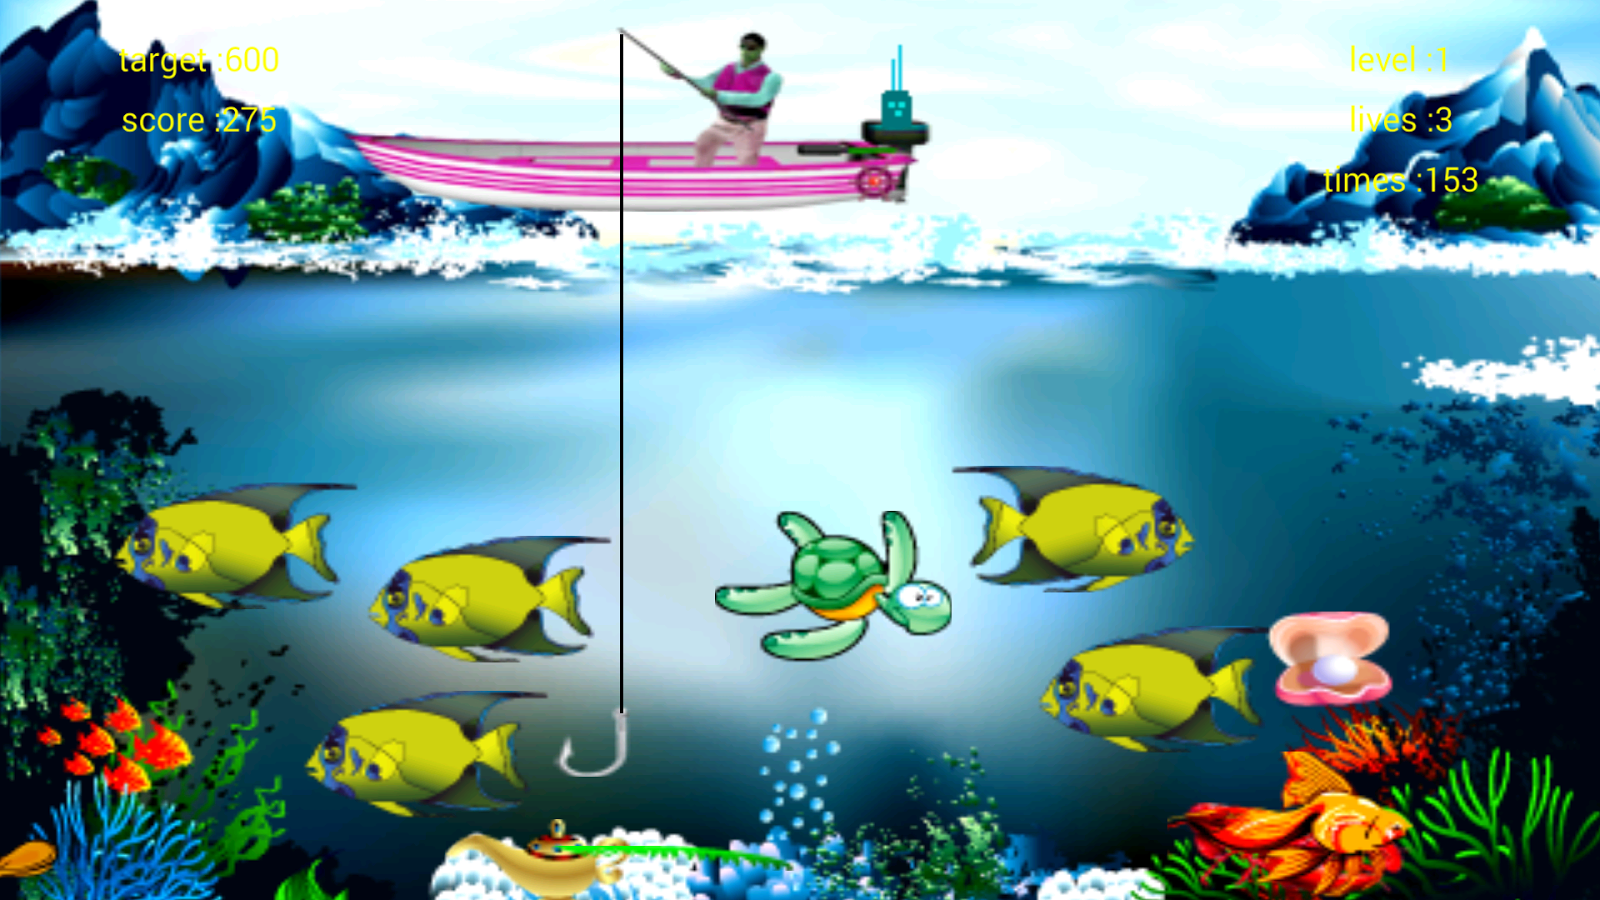 Fishing game android apps on google play for Fishing game app